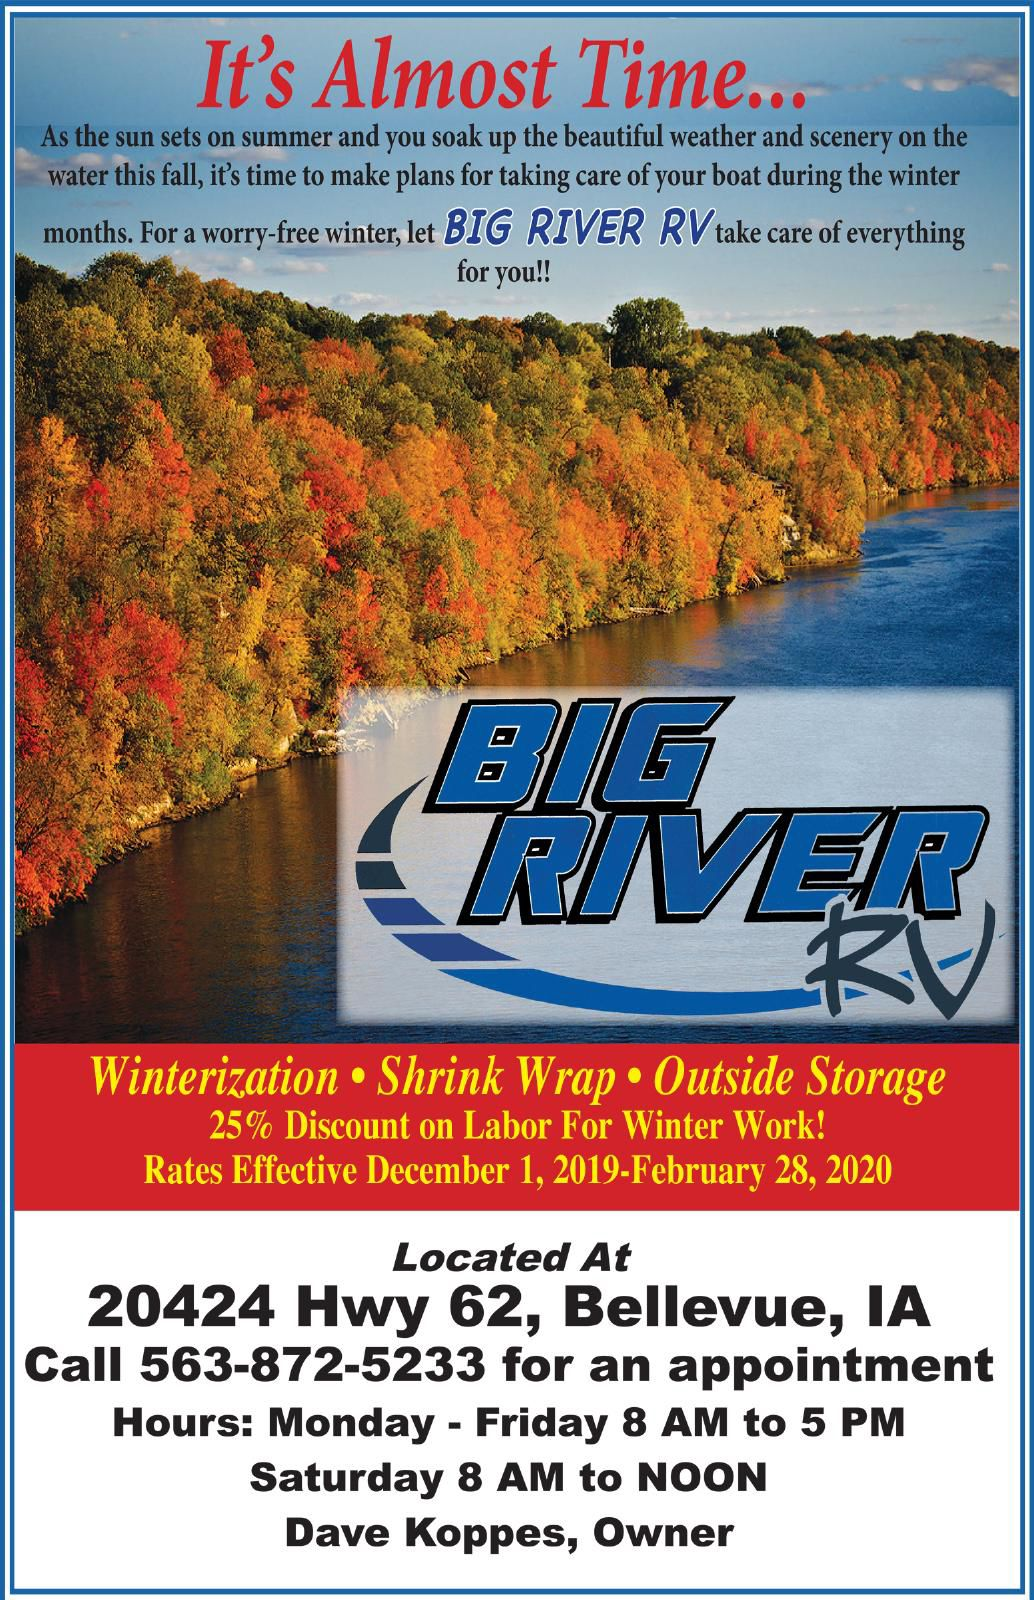 It's Almost Time....Big River RV